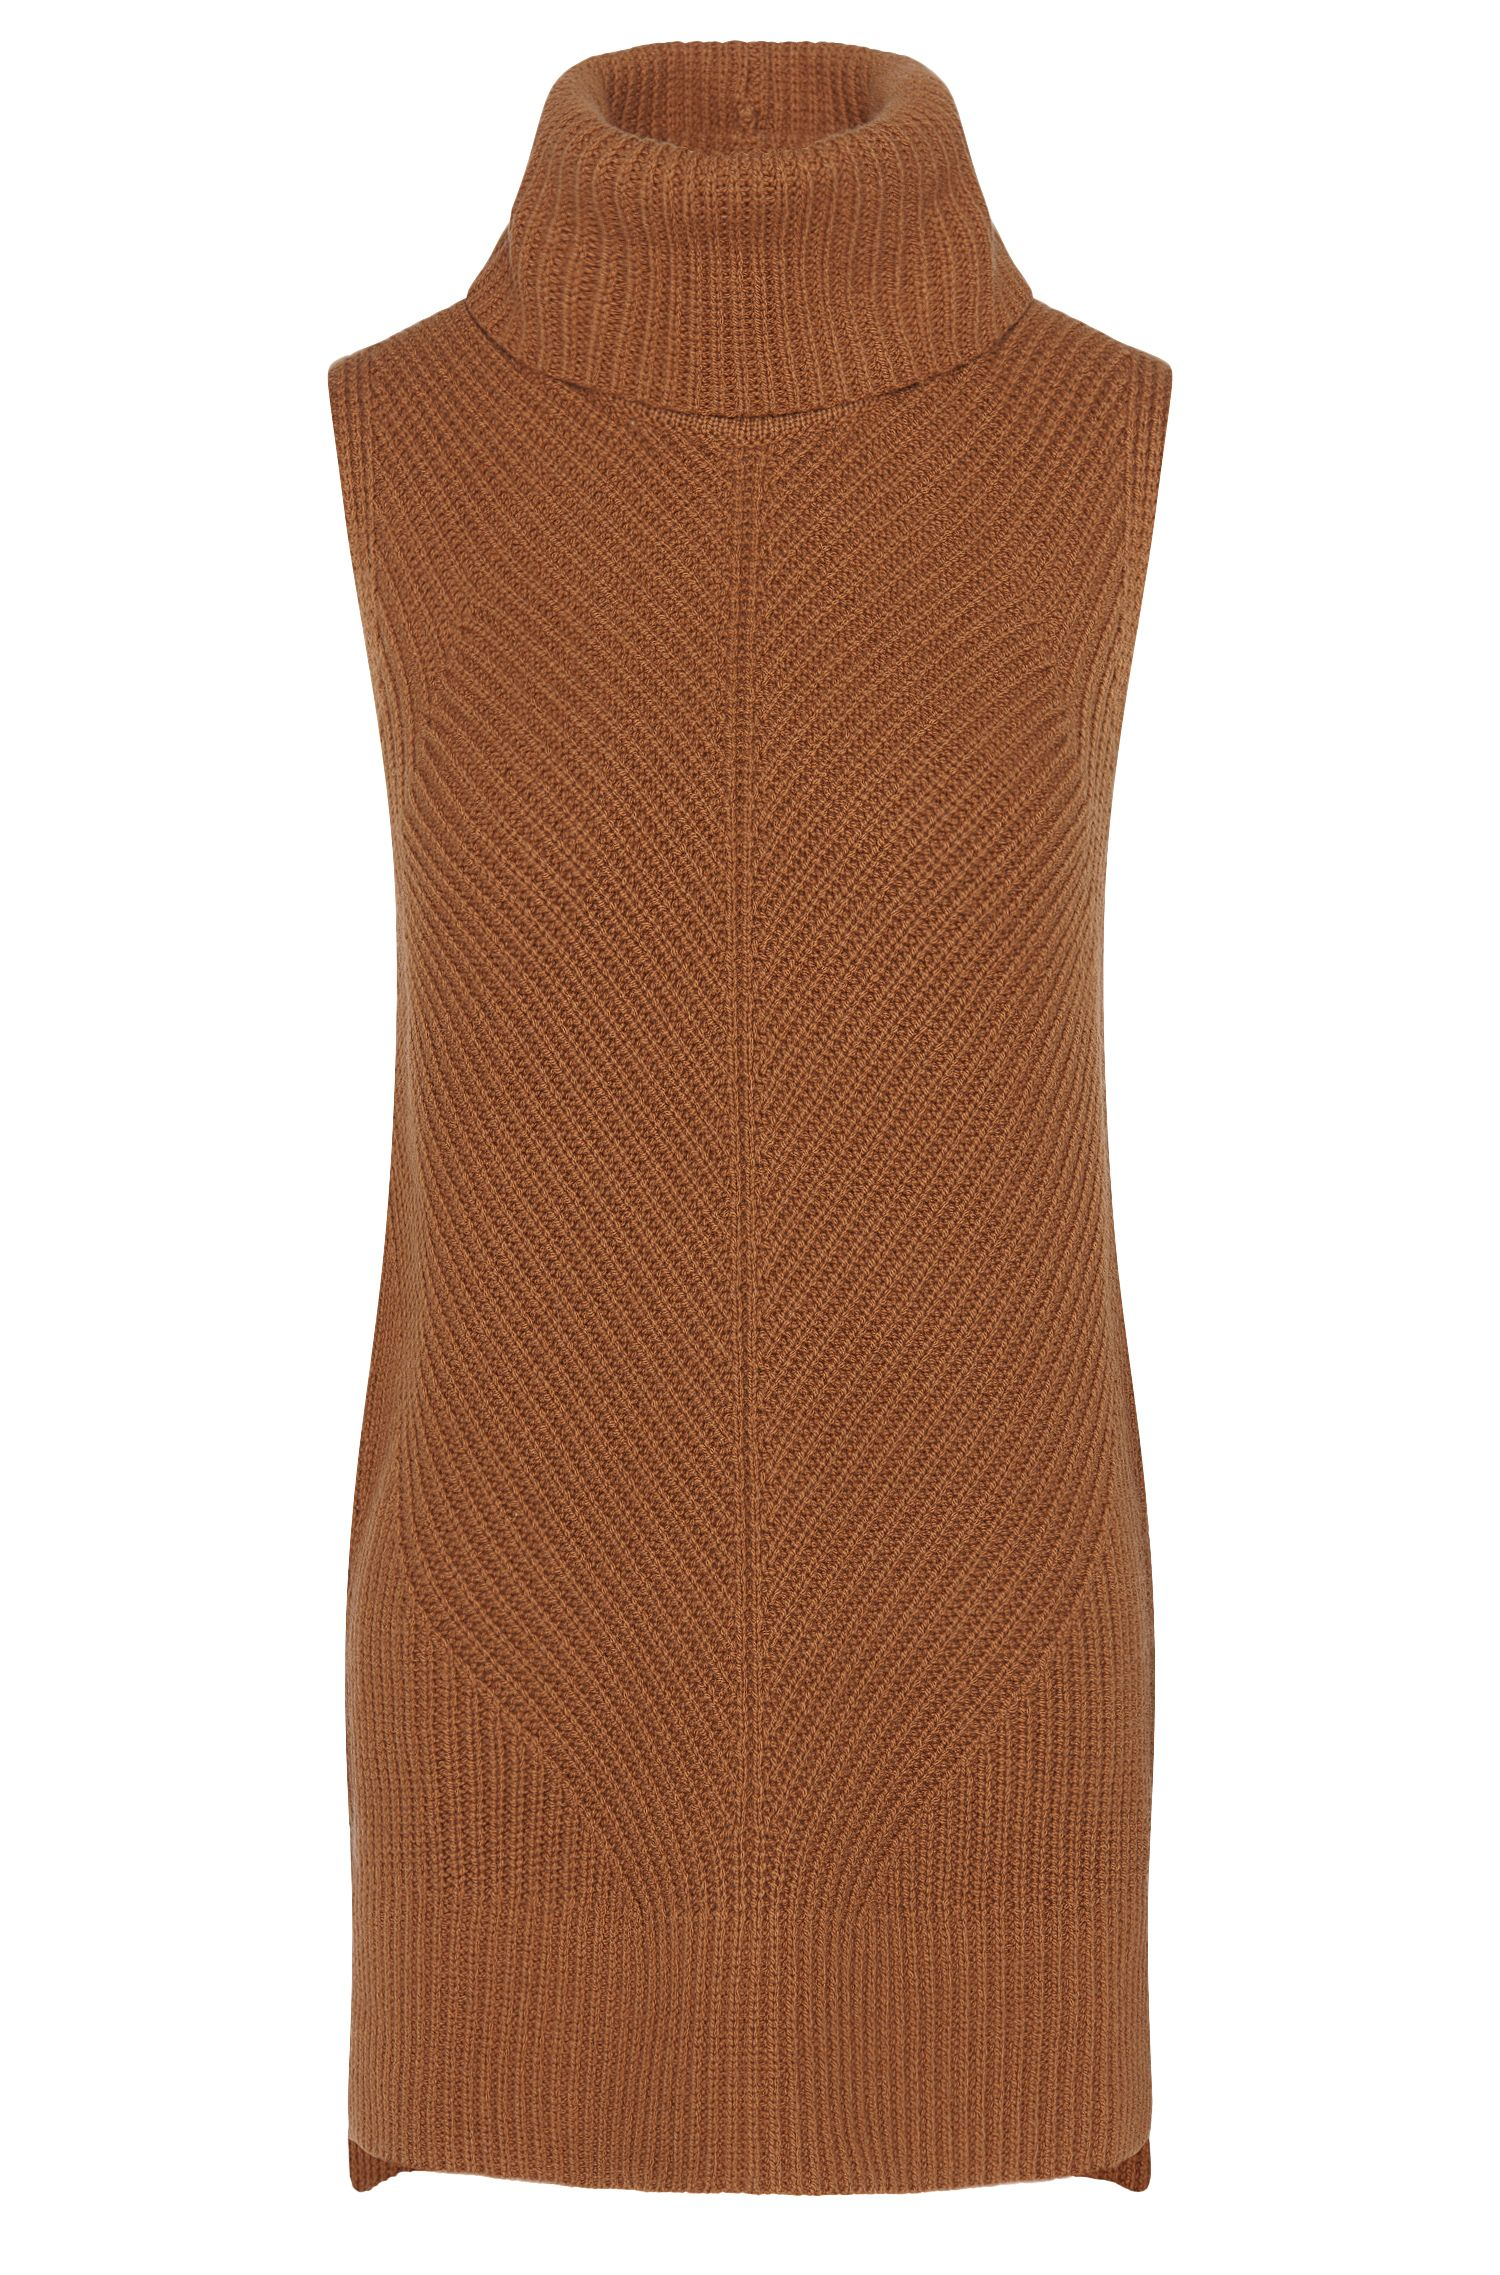 Polo-neck sleeveless sweater in a new-wool blend with yak wool and cashmere: 'Fala'